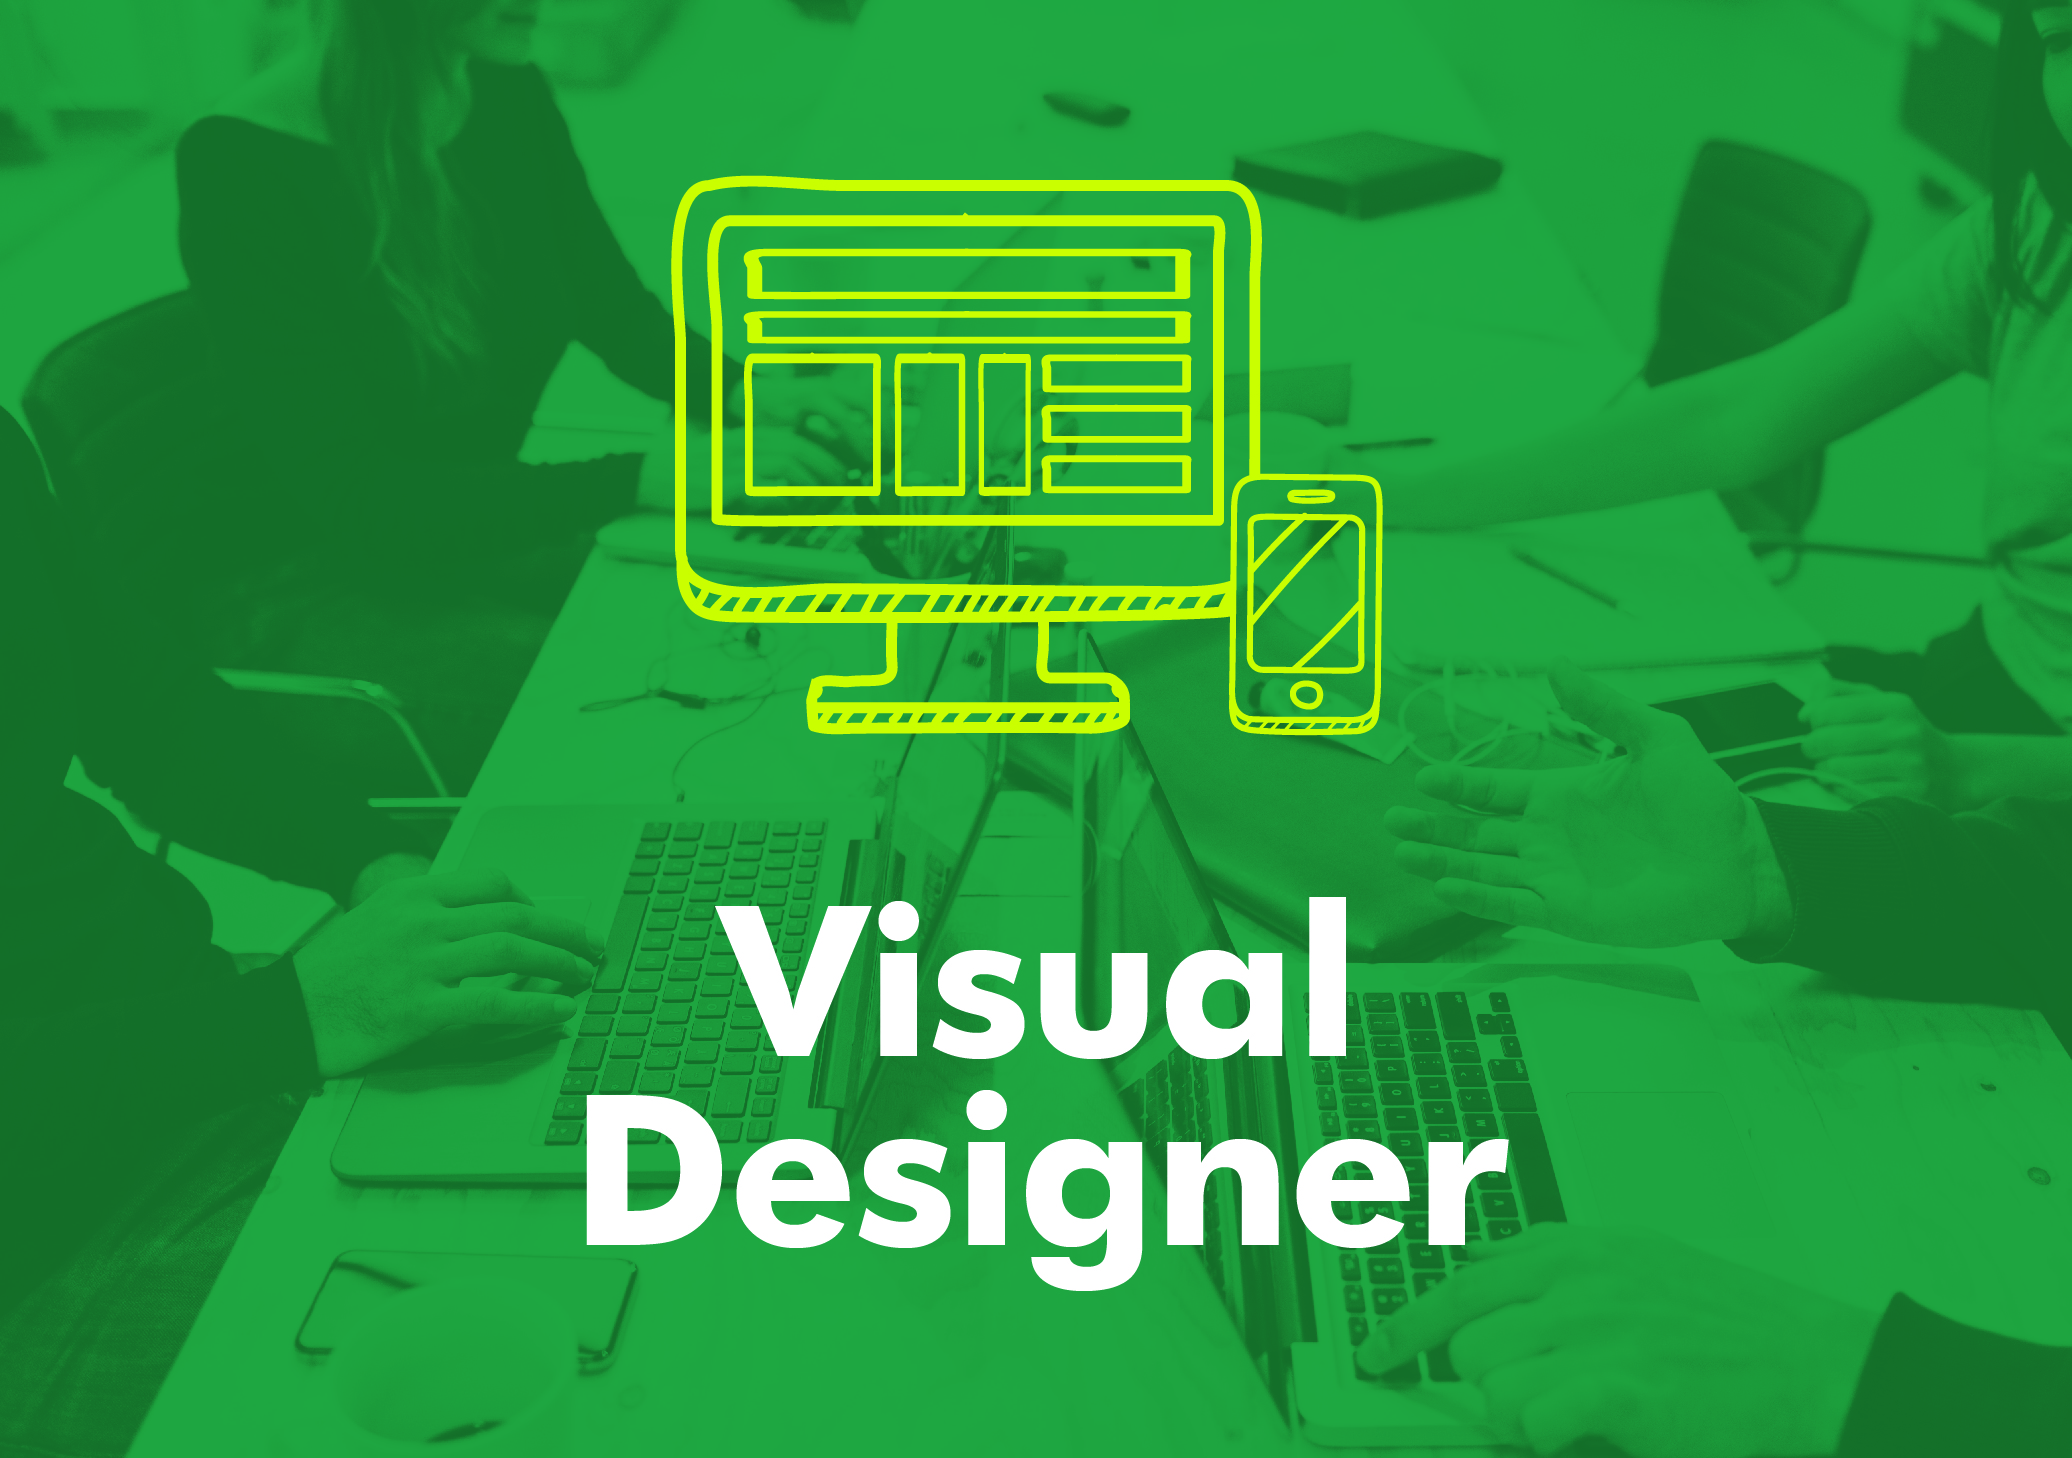 Visual Designer Job Description And Salary Outlook